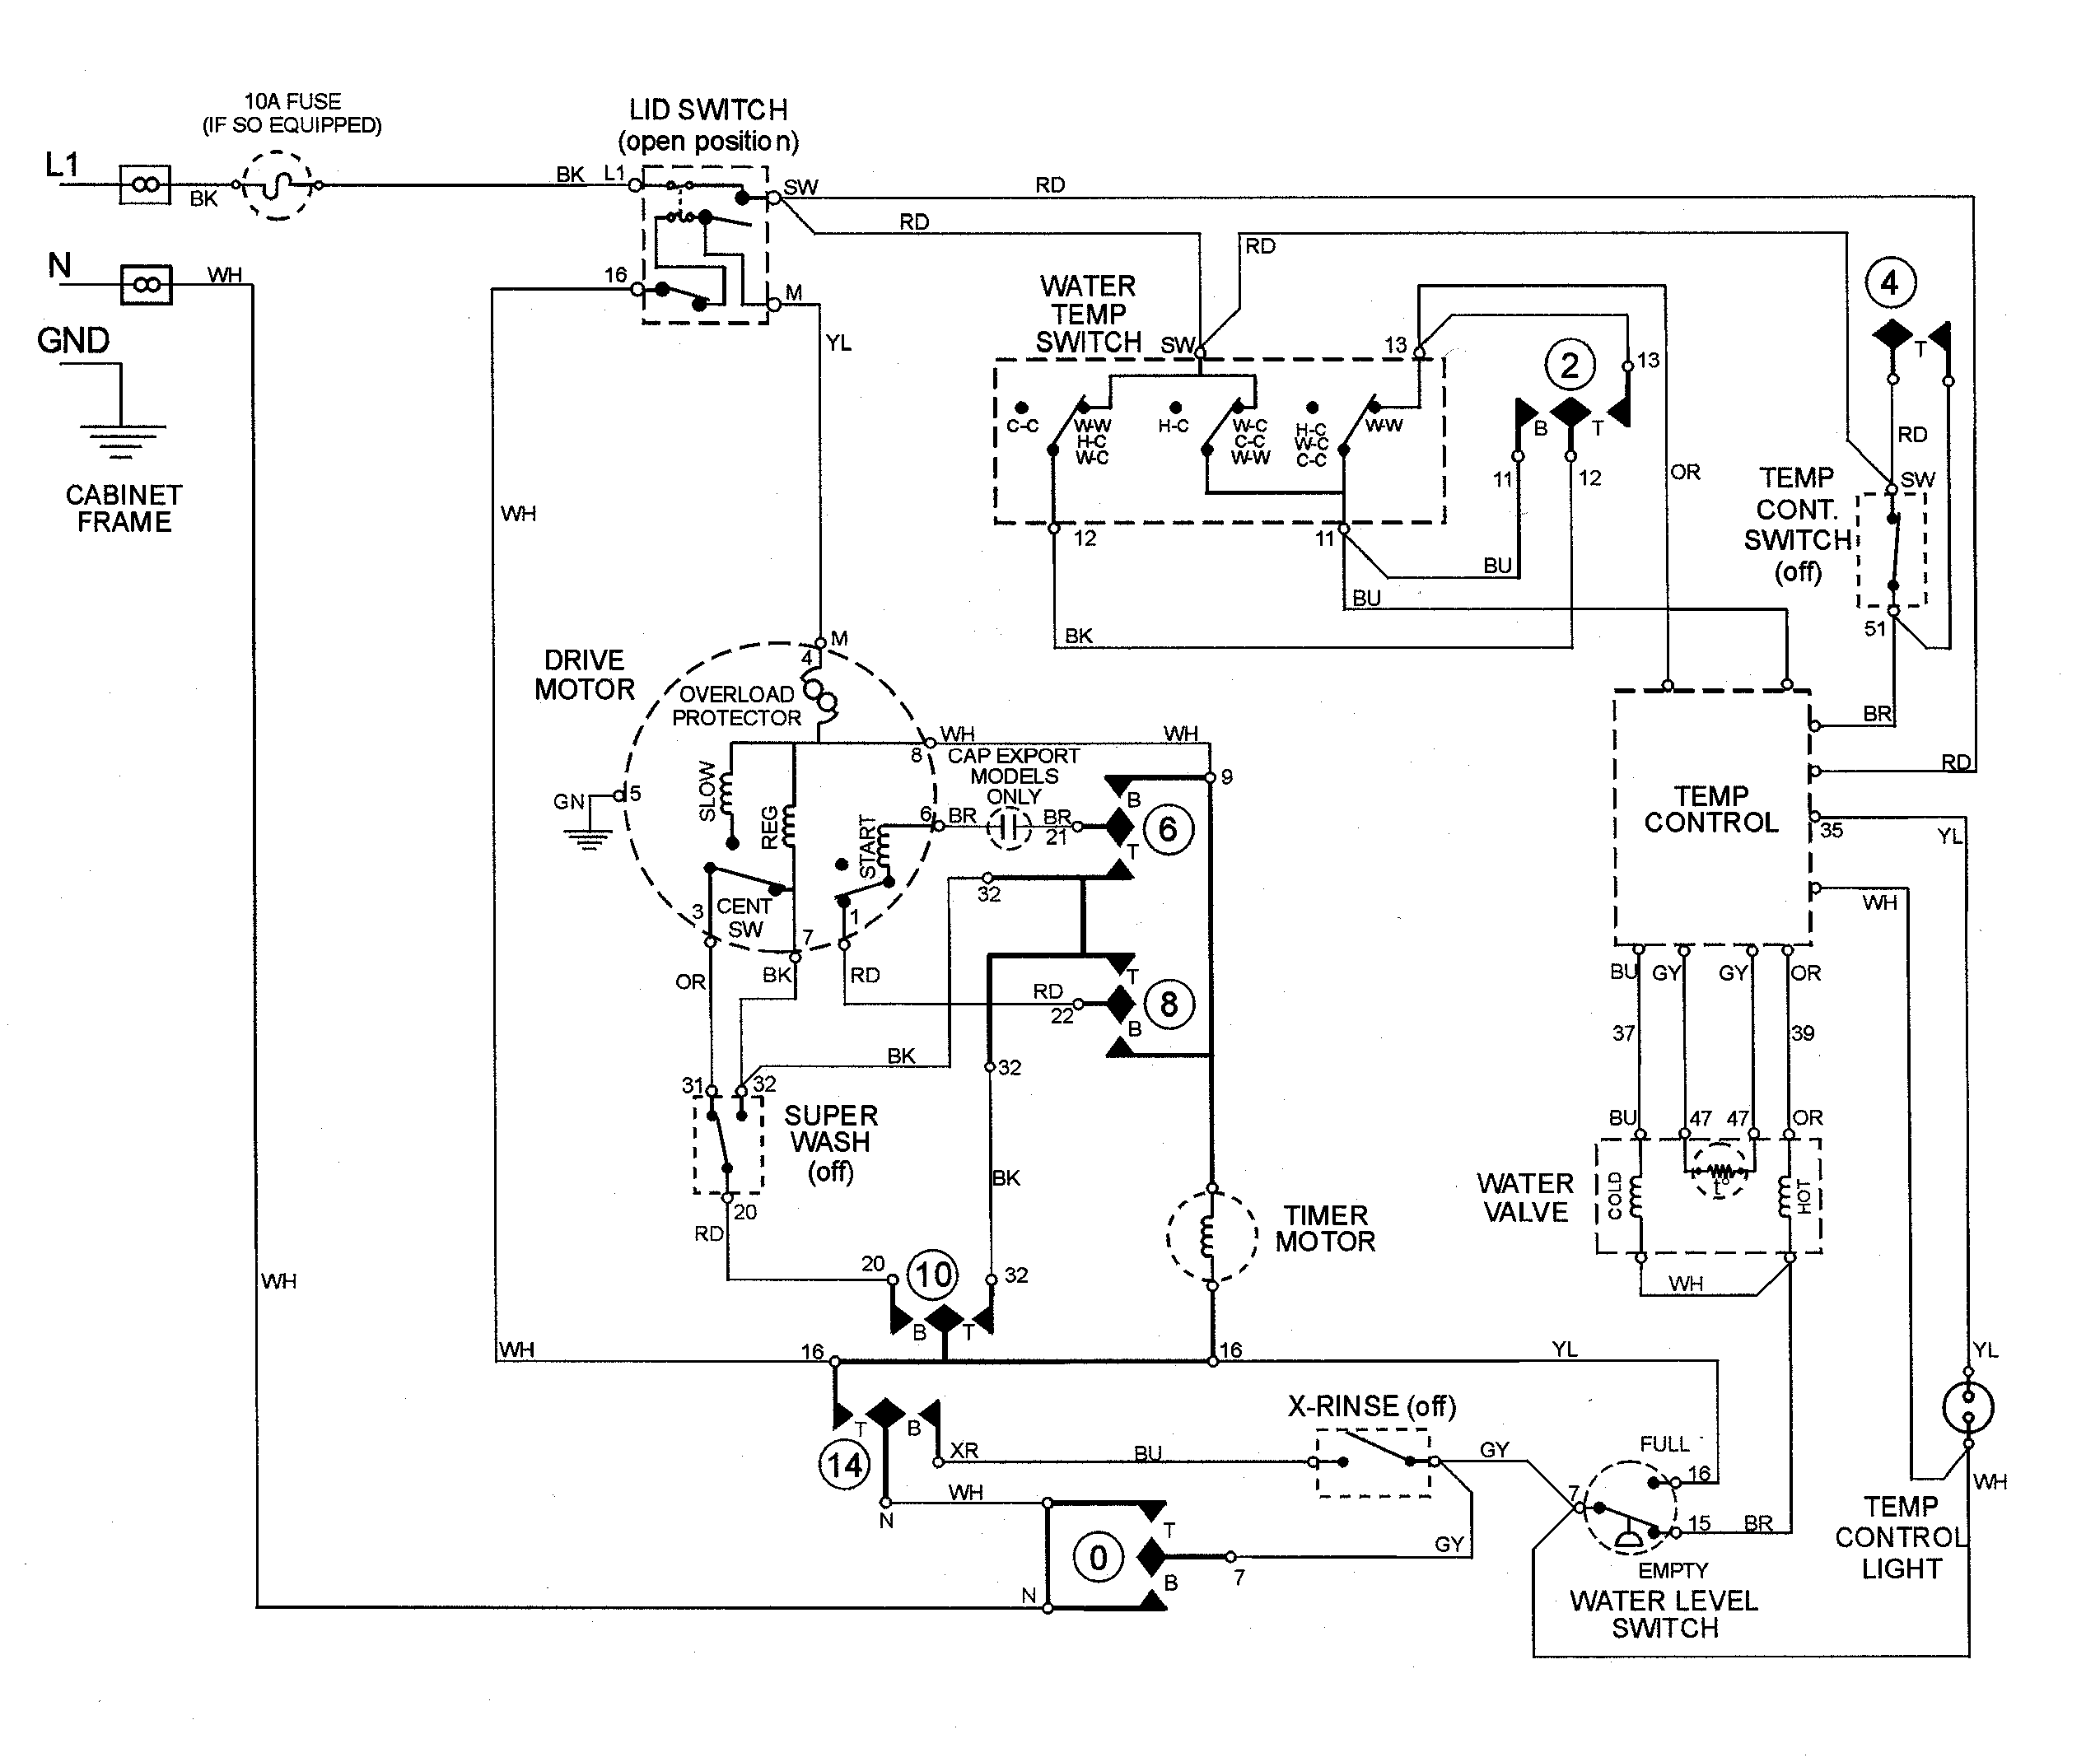 Wiring Diagram Of Washing Machine Motor Washing Machine Motor Washing Machine Dryer Washing Machine